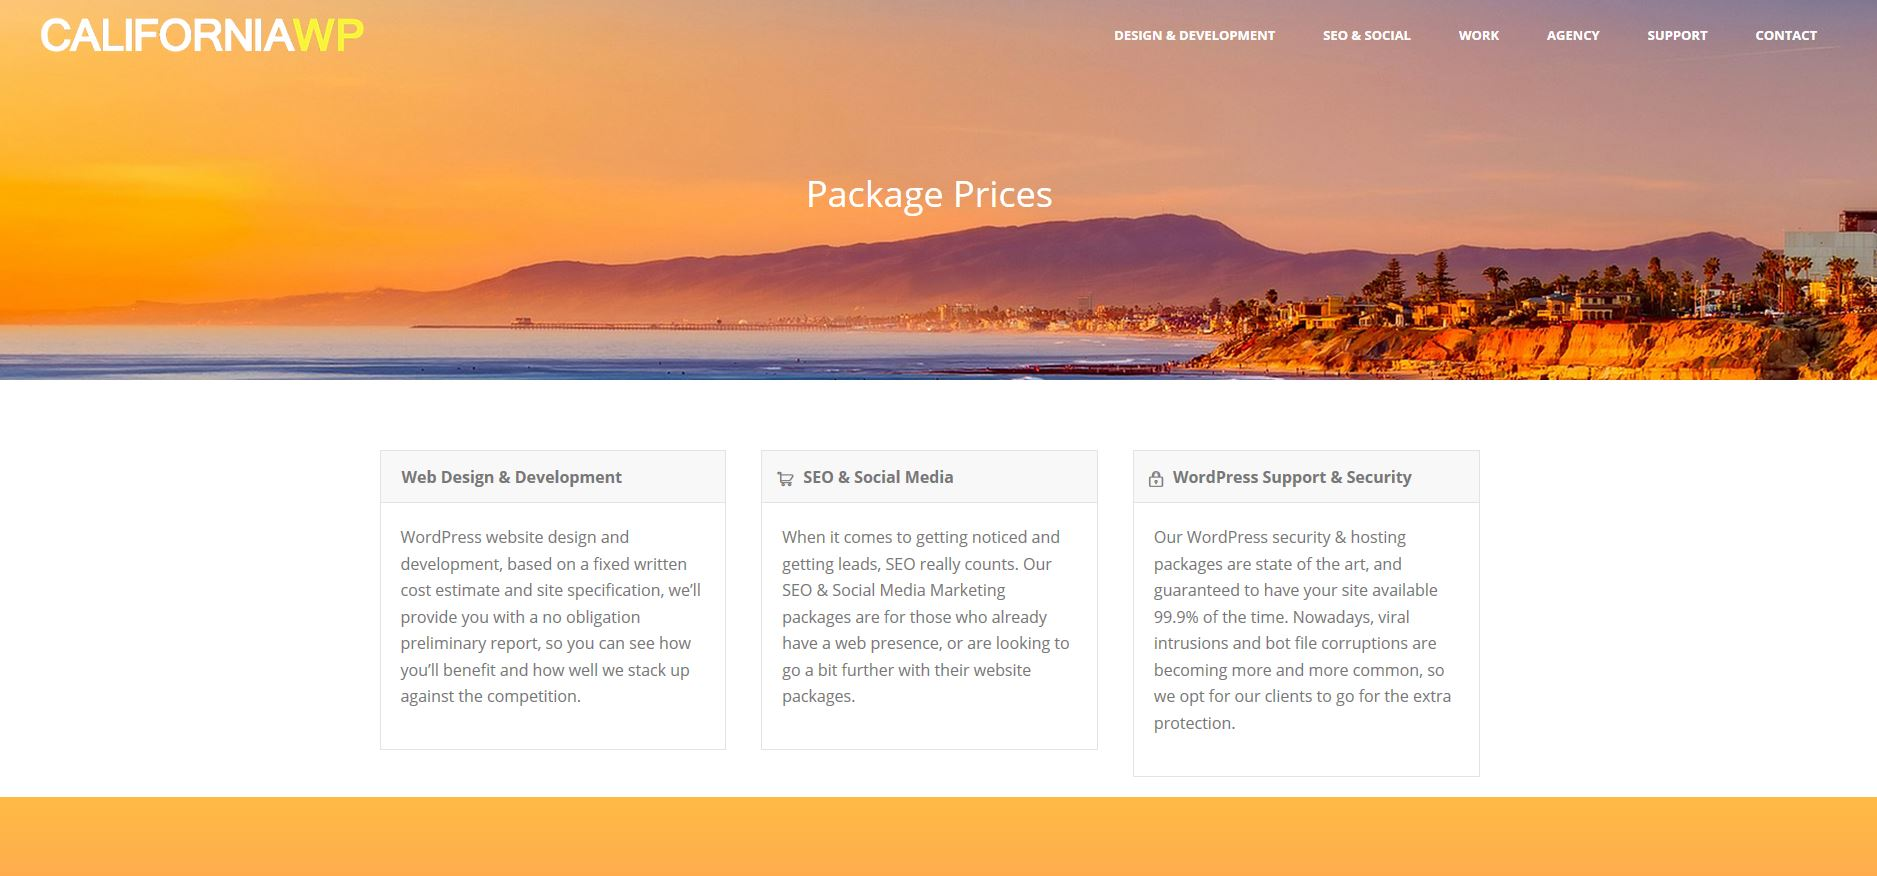 Plans & Pricing